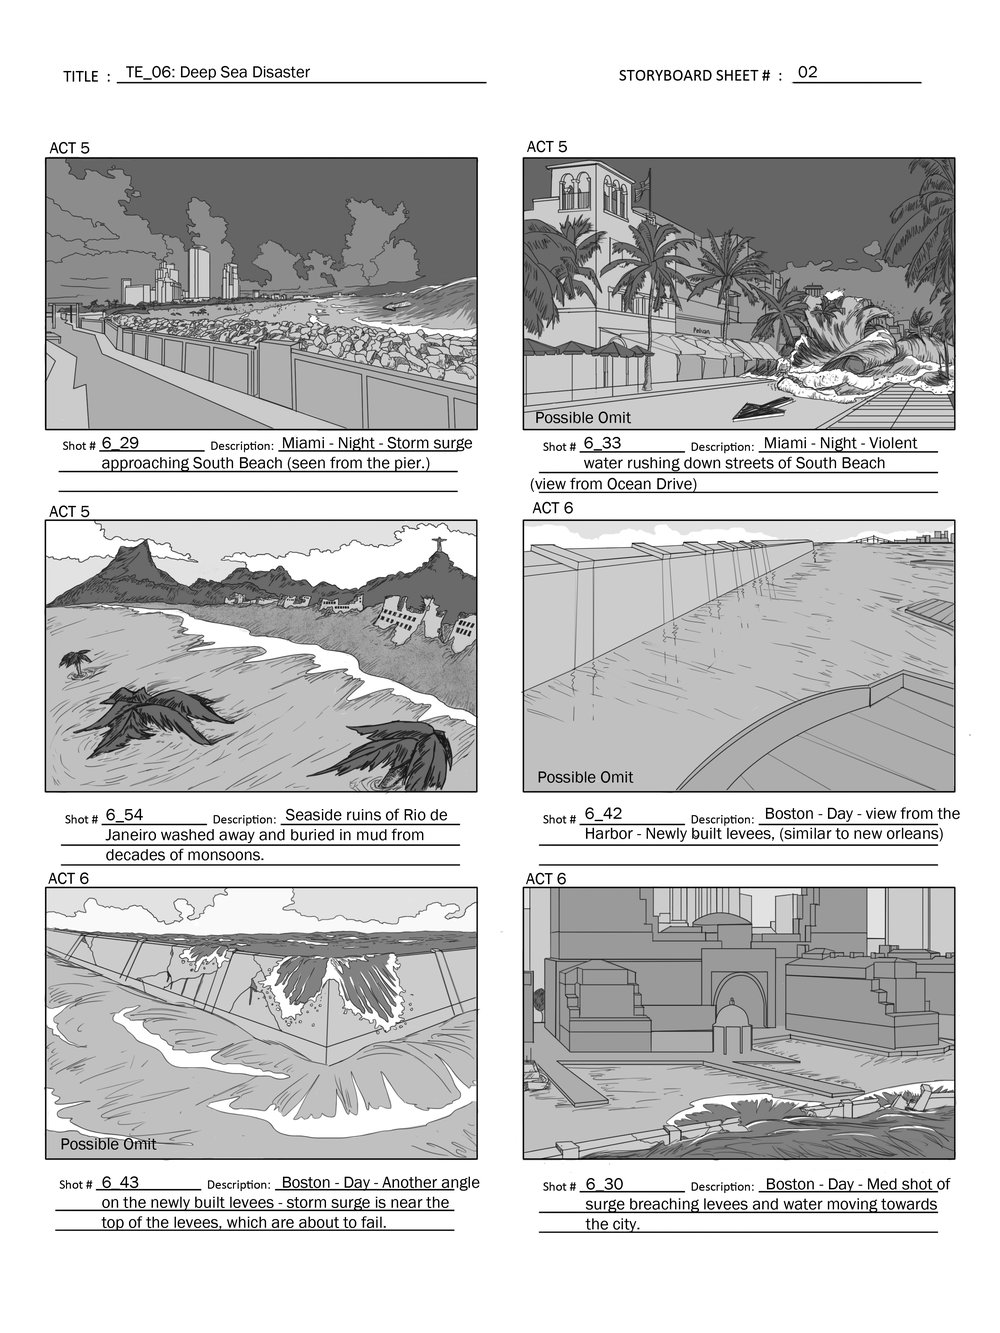 TE06_DSD Storyboard digital revision_pg2.jpg